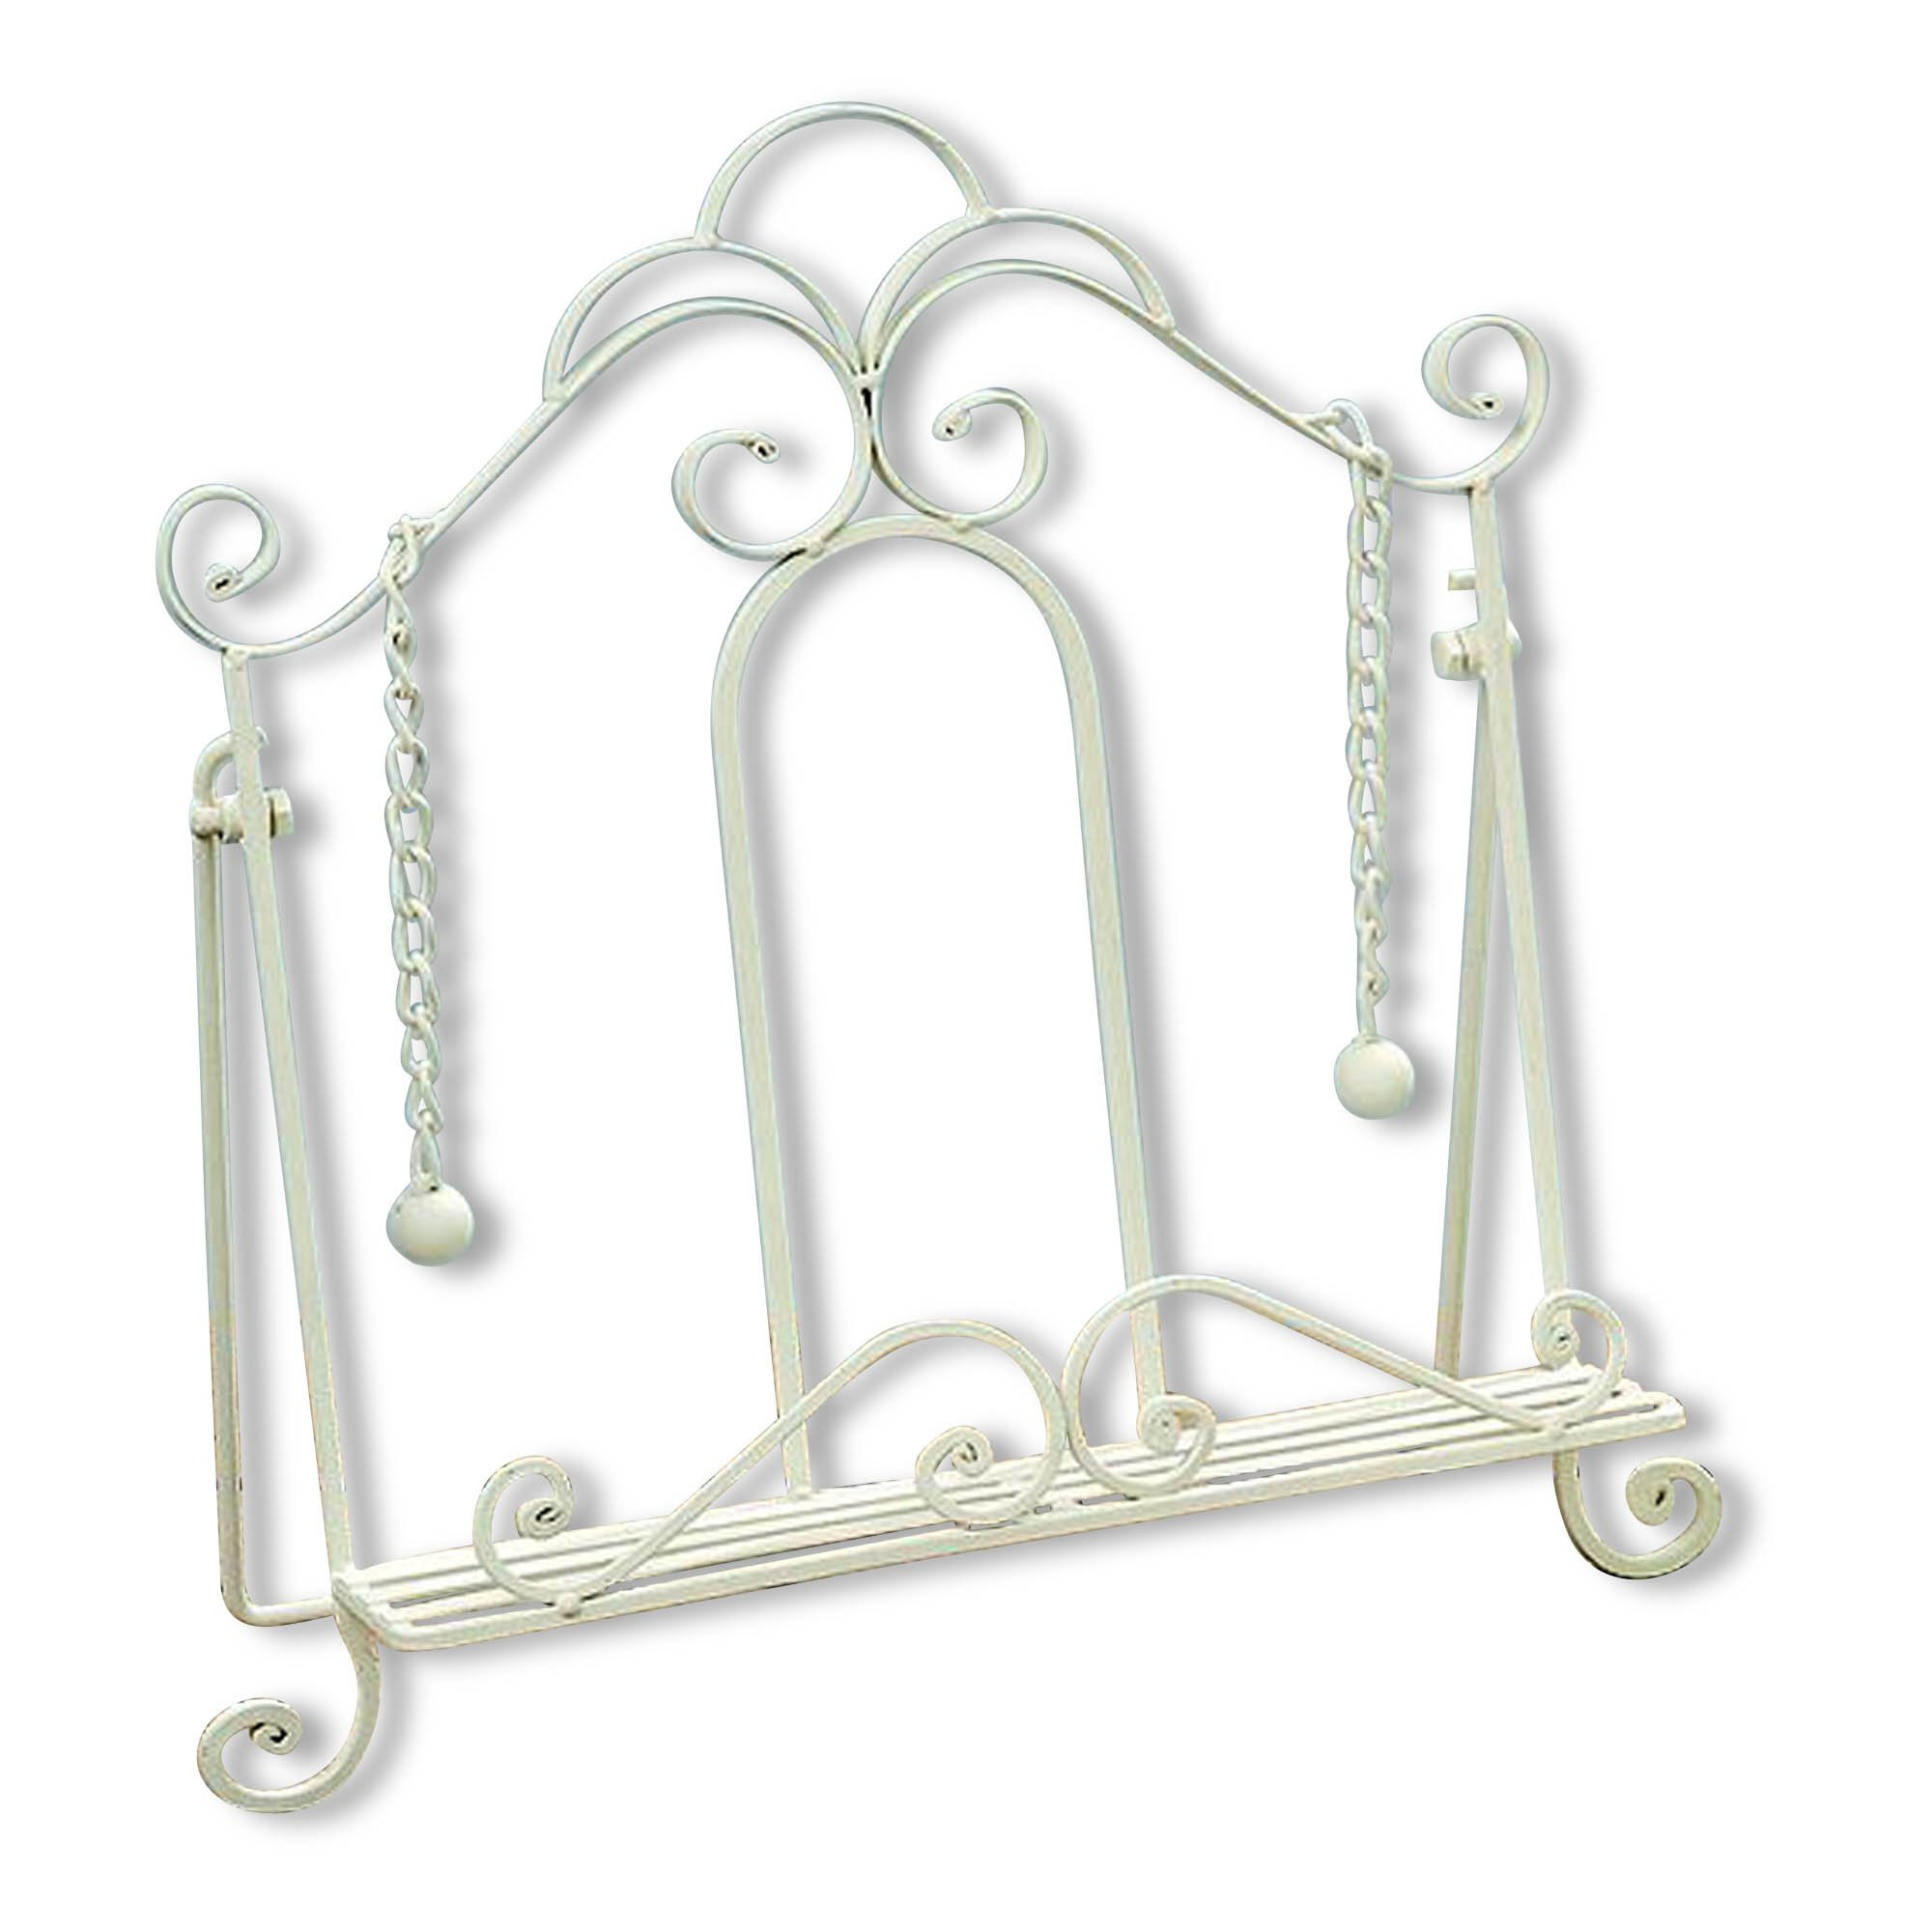 Gastro Chic Cook Book Stand, Artisinal Design, White, Weighted Drop Chain Page Holders, Iconic Scroll Work Details, Easel Back, 13 3/4 Inches Tall by WHW Whole House Worlds